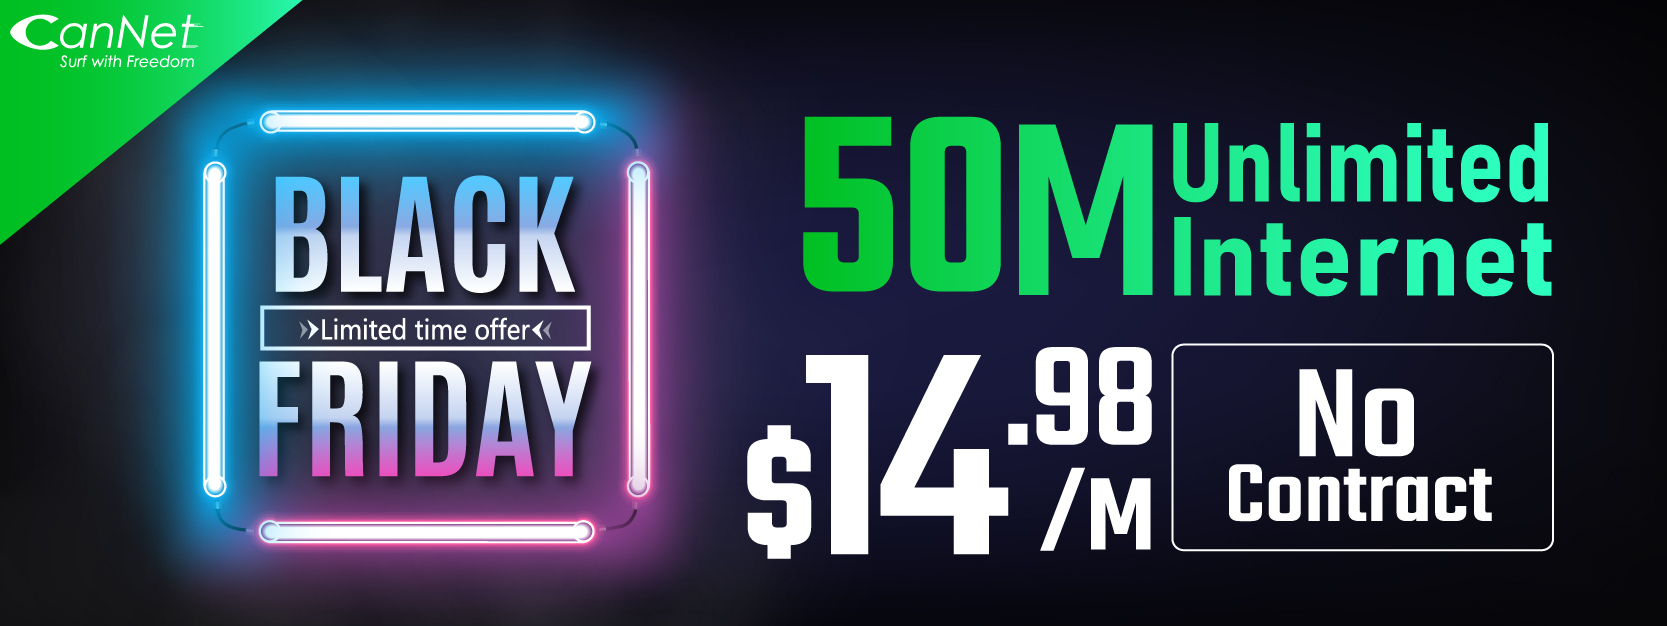 CanNet Black Friday Internet Deal 50M Unlimited Internet for $14.98/month(PROMOTION HAS ENDED)